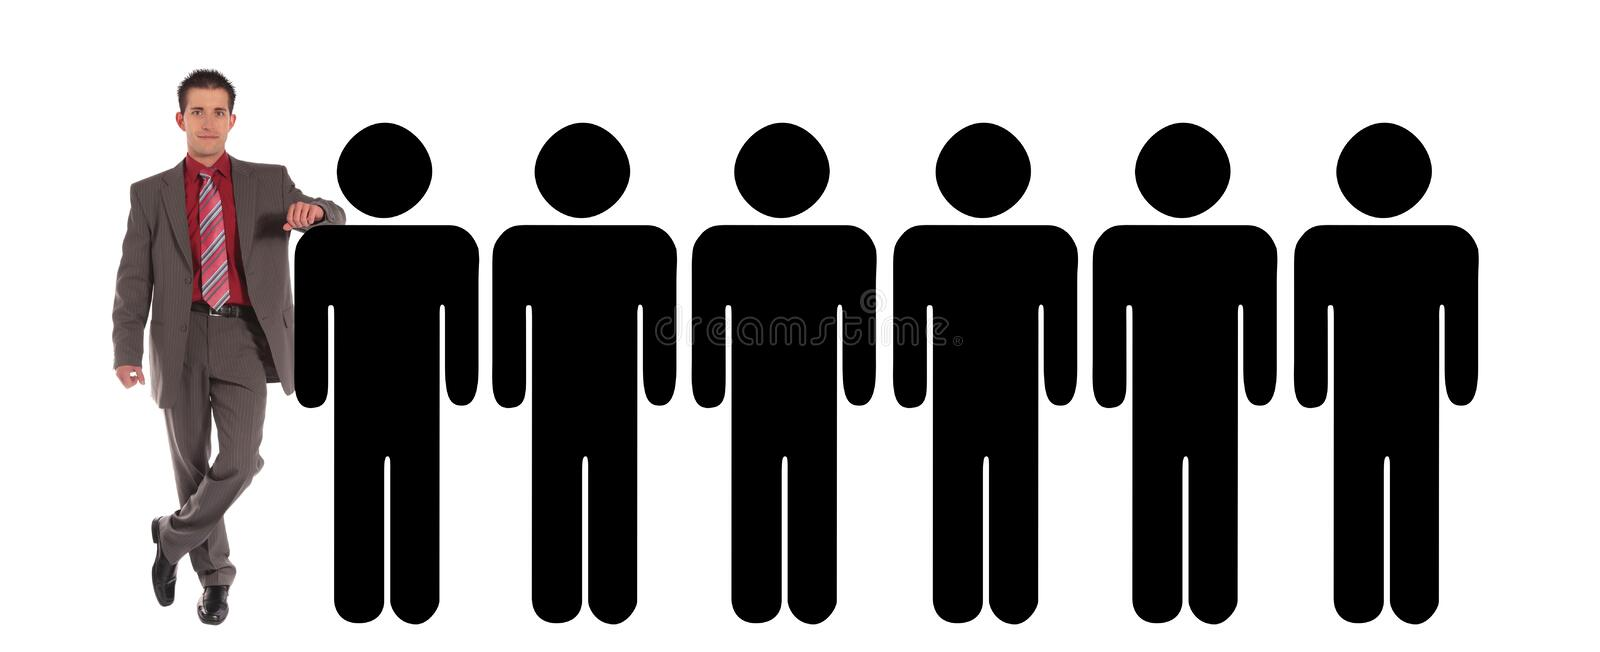 Selection process. A handsome businessman standing next to a row of stylized persons. All on white background stock photography